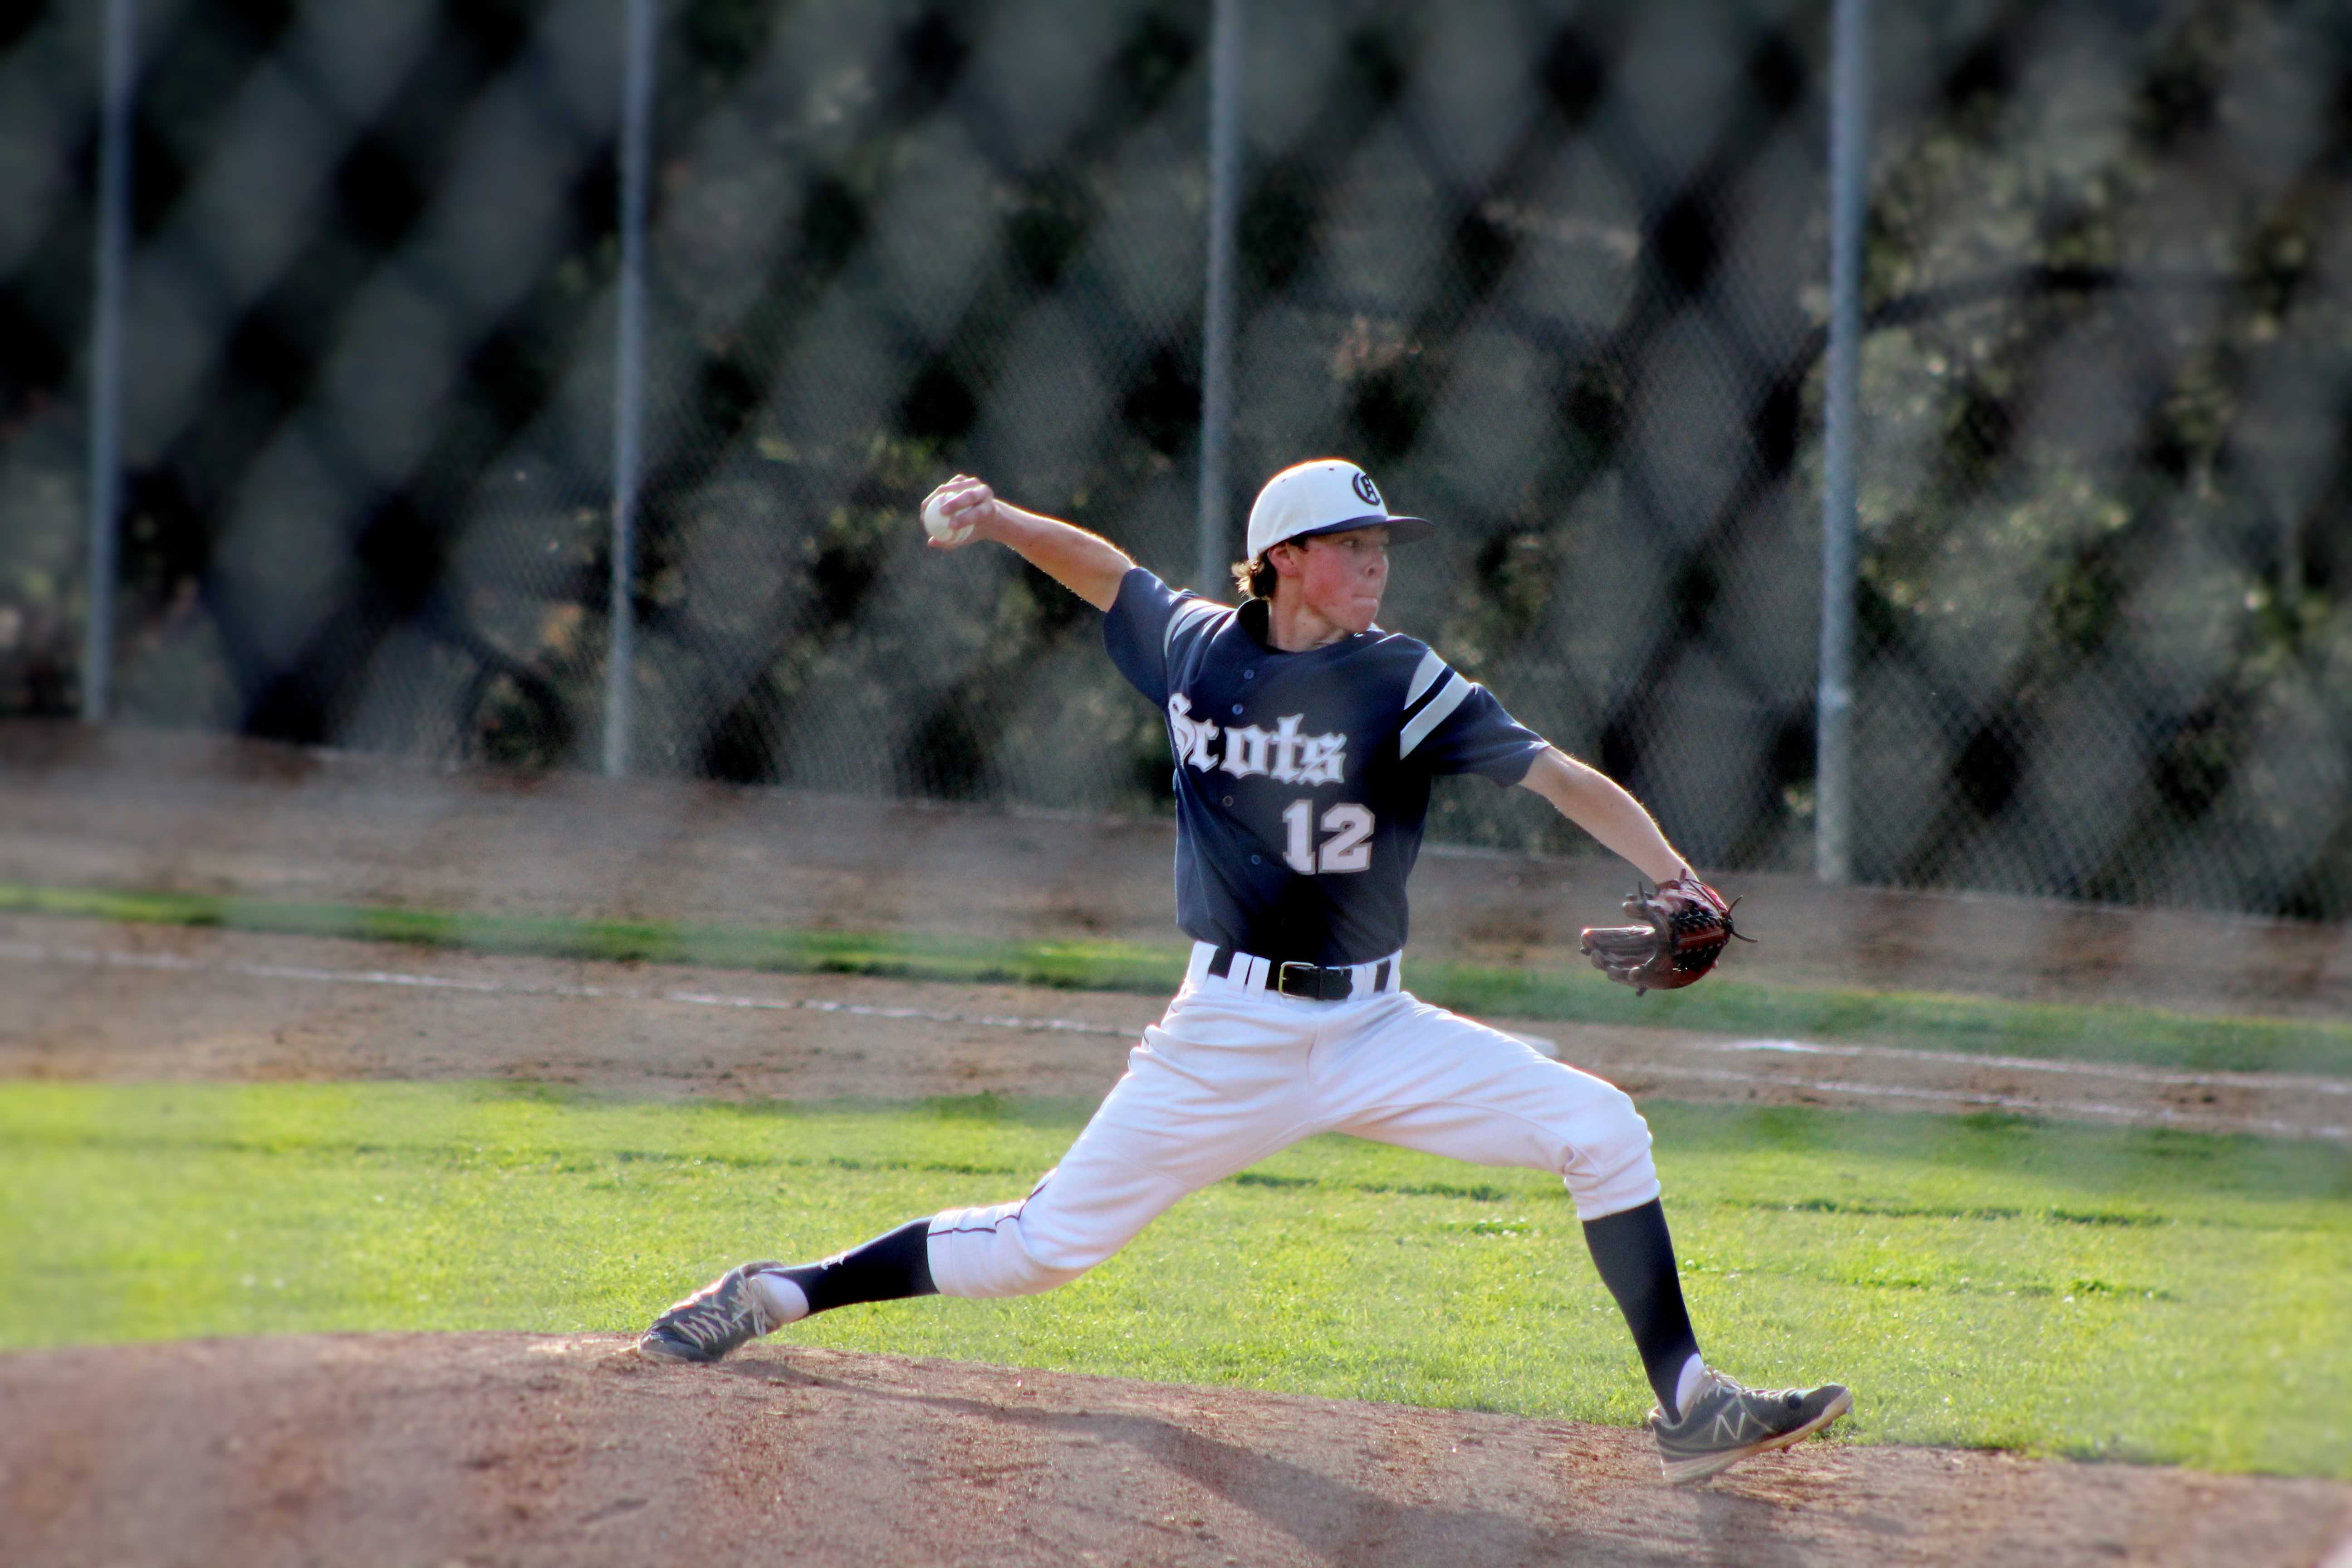 A well-earned victory for varsity baseball